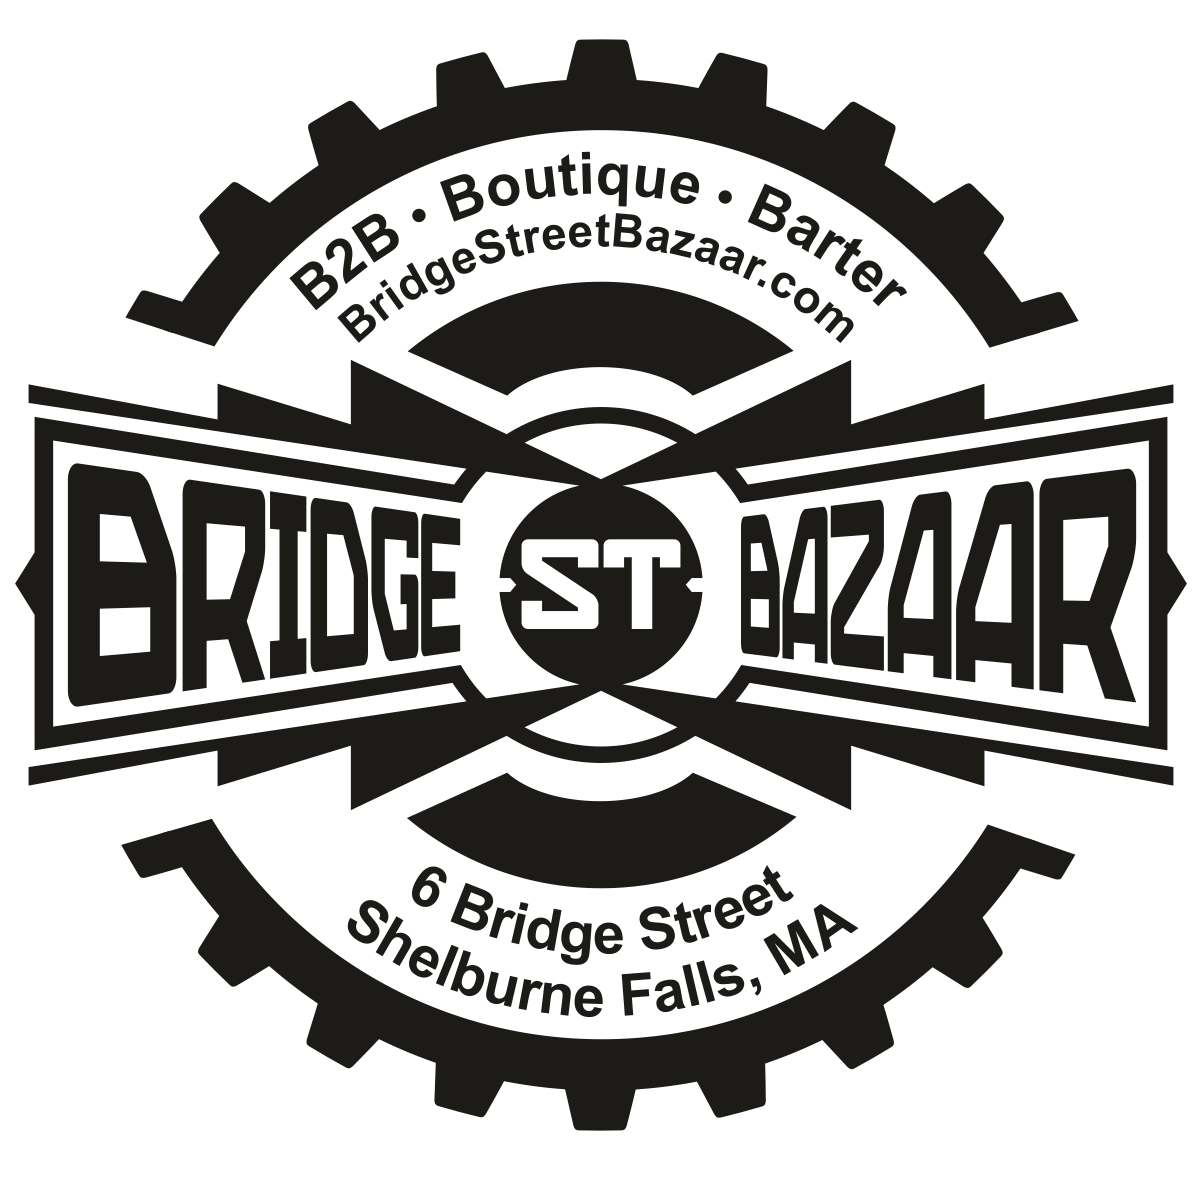 Bridge Street Bazaar